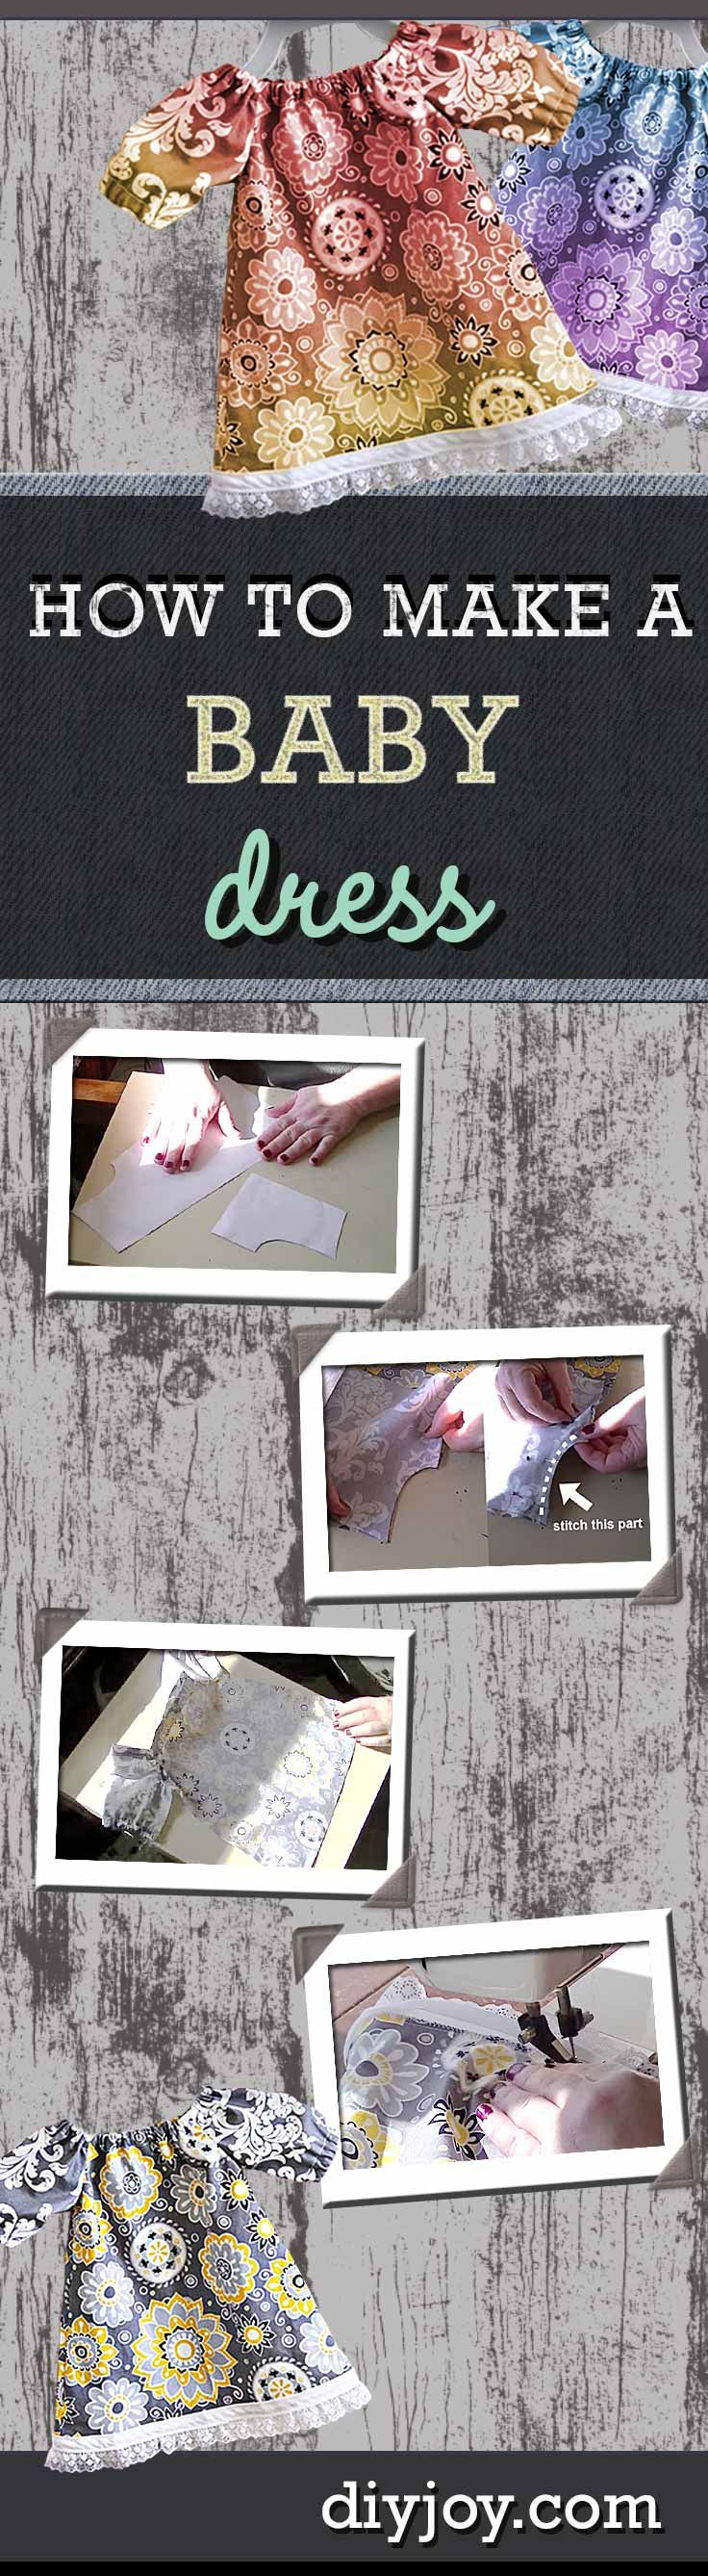 Free Diy Projects 56 Best Do It Yourself Images On Pinterest Cool Diy Gifts And